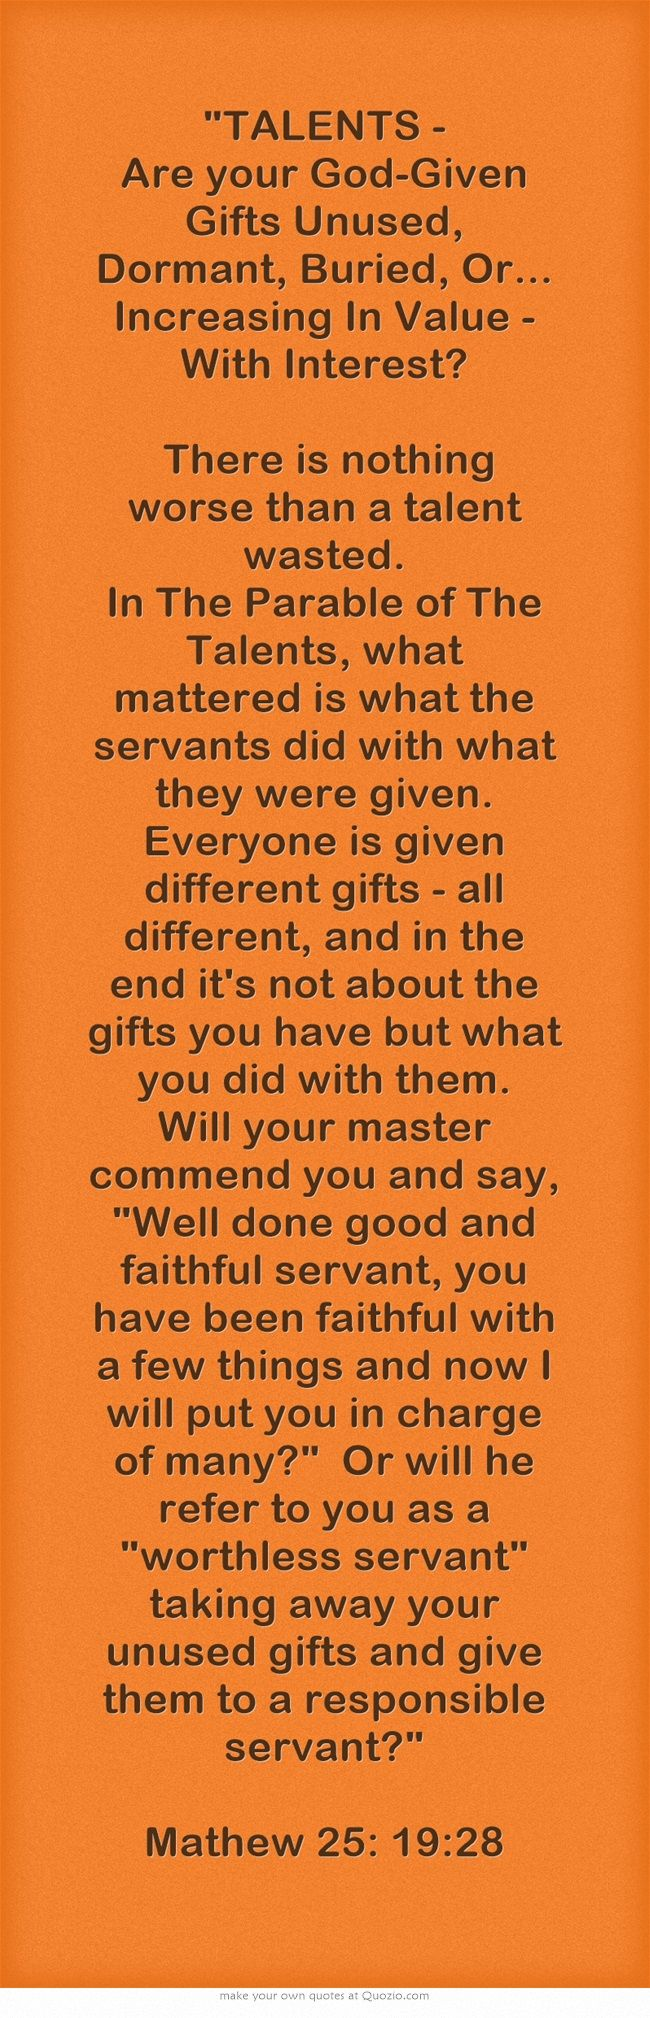 TALENTS - Are your God-Given Gifts Unused, Dormant, Buried, Or... Mathew 25:19-28